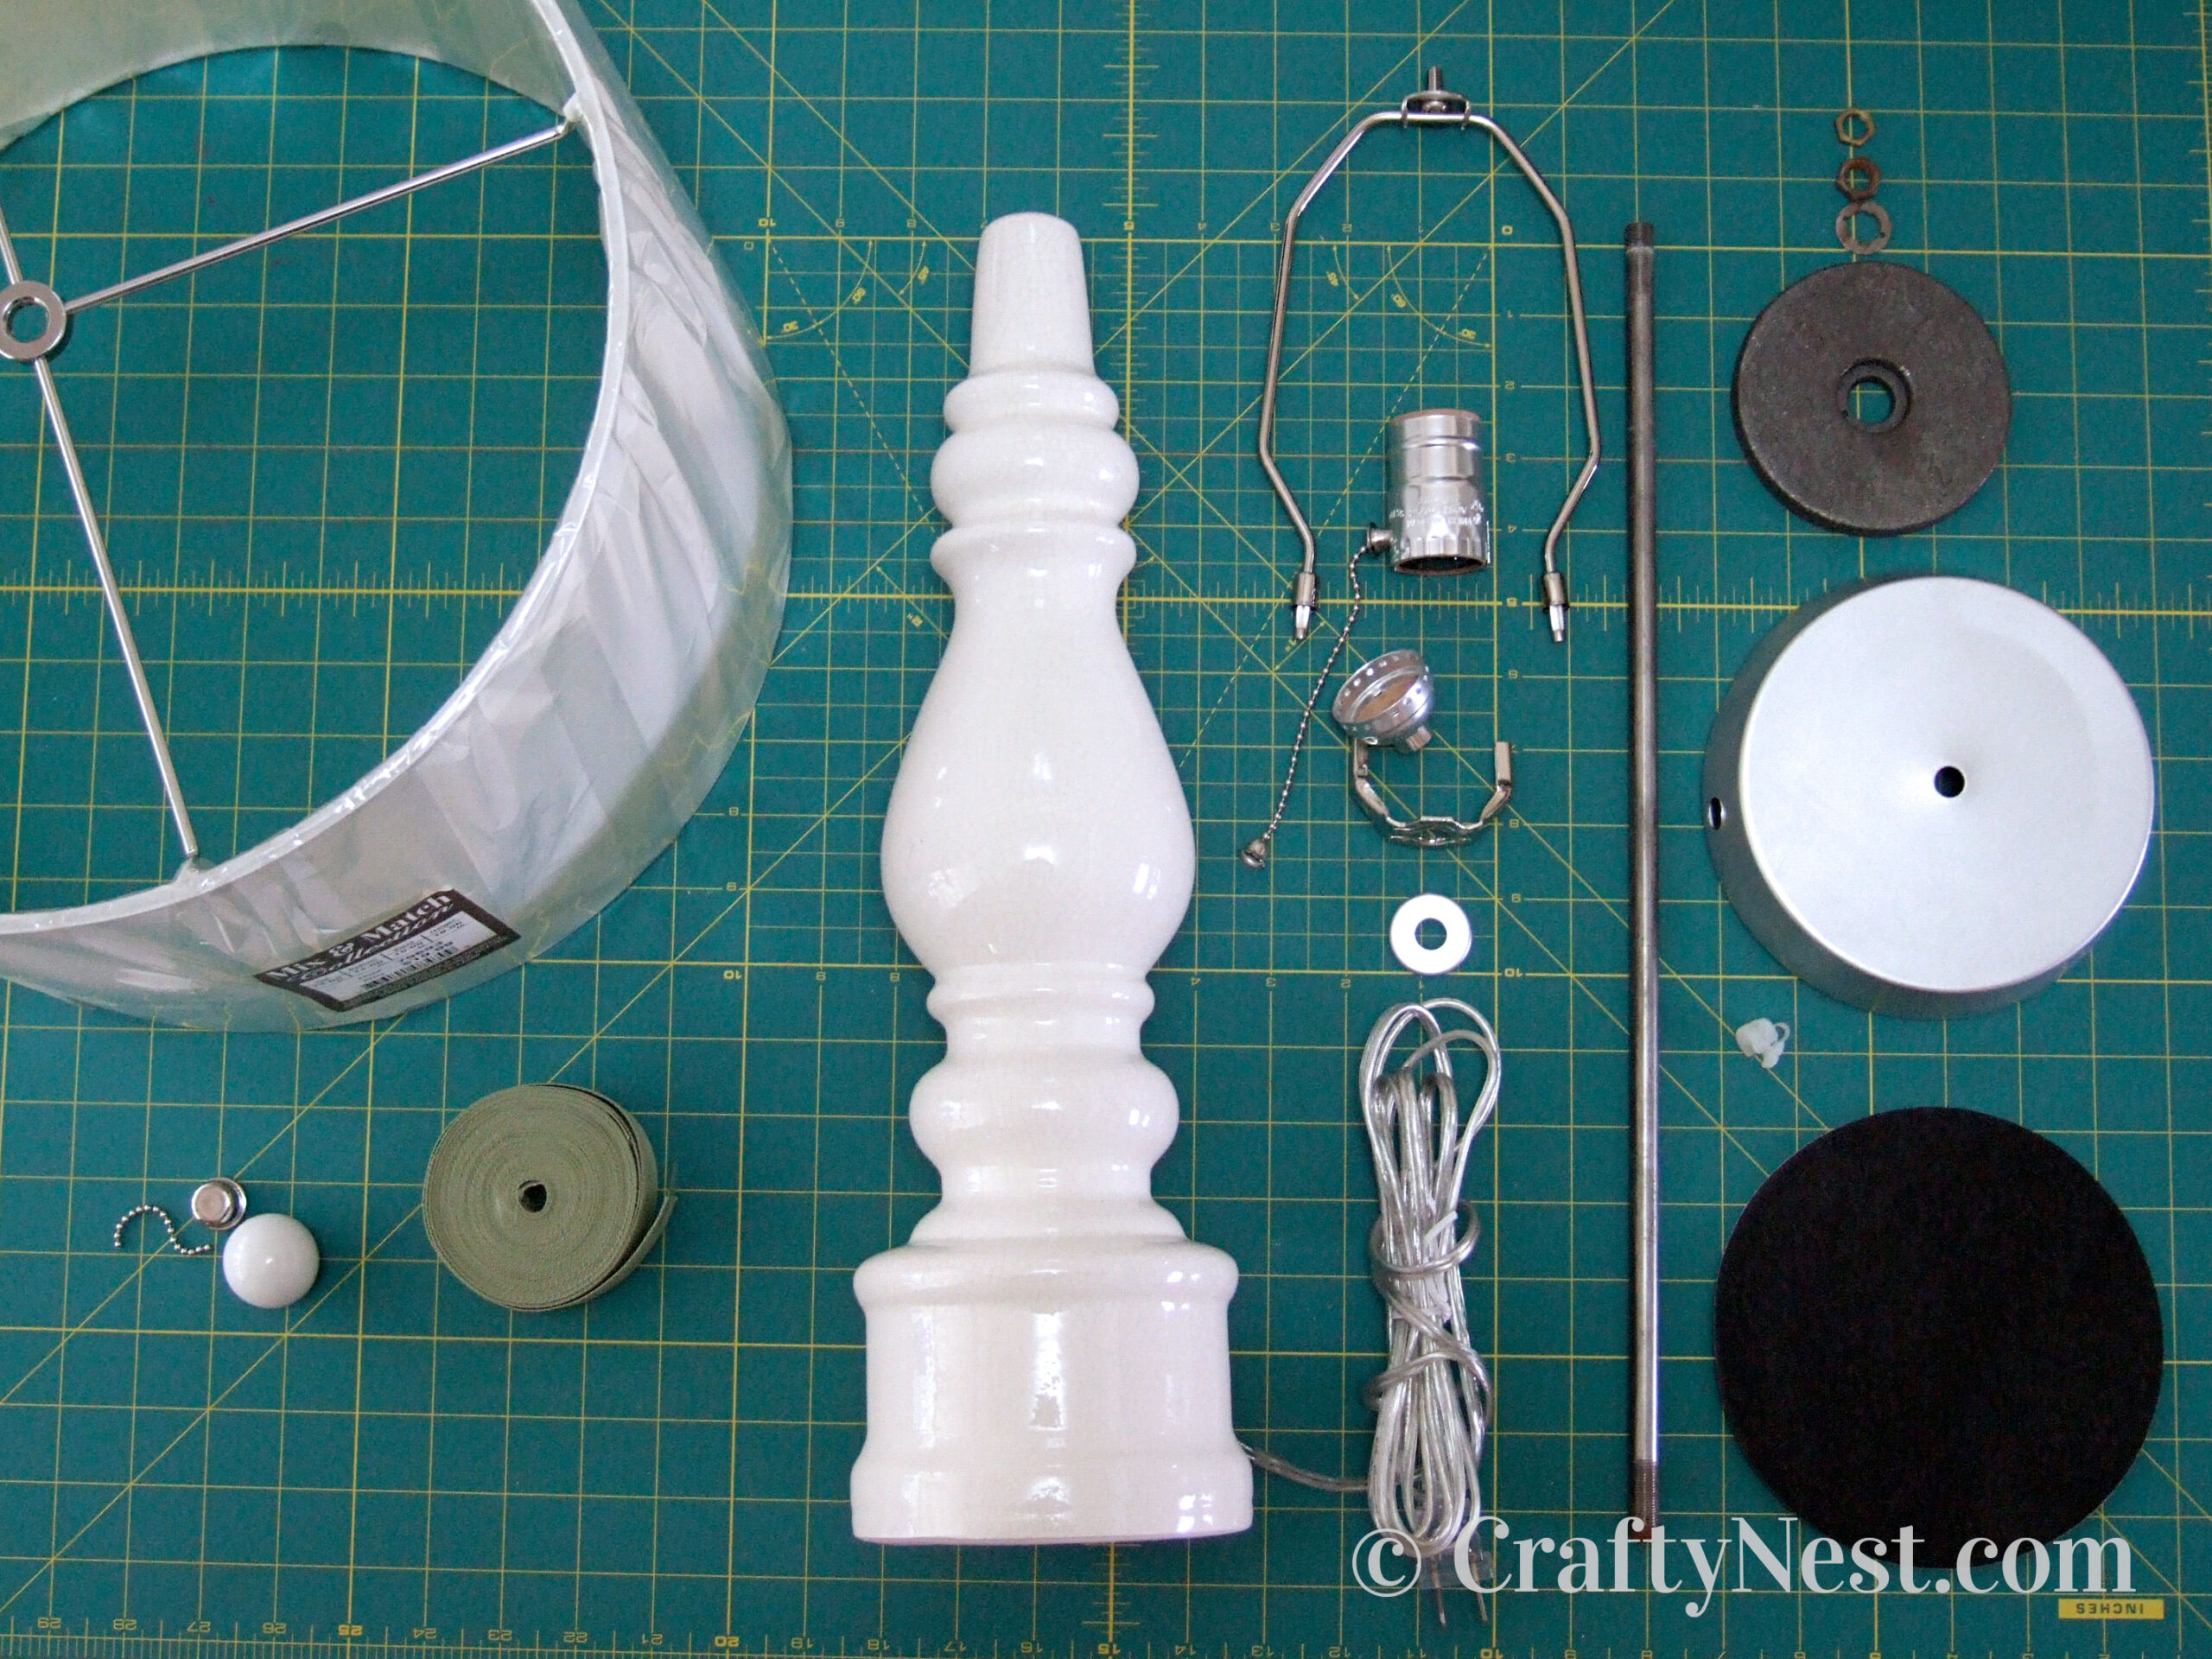 Supplies to rewire a table lamp, photo